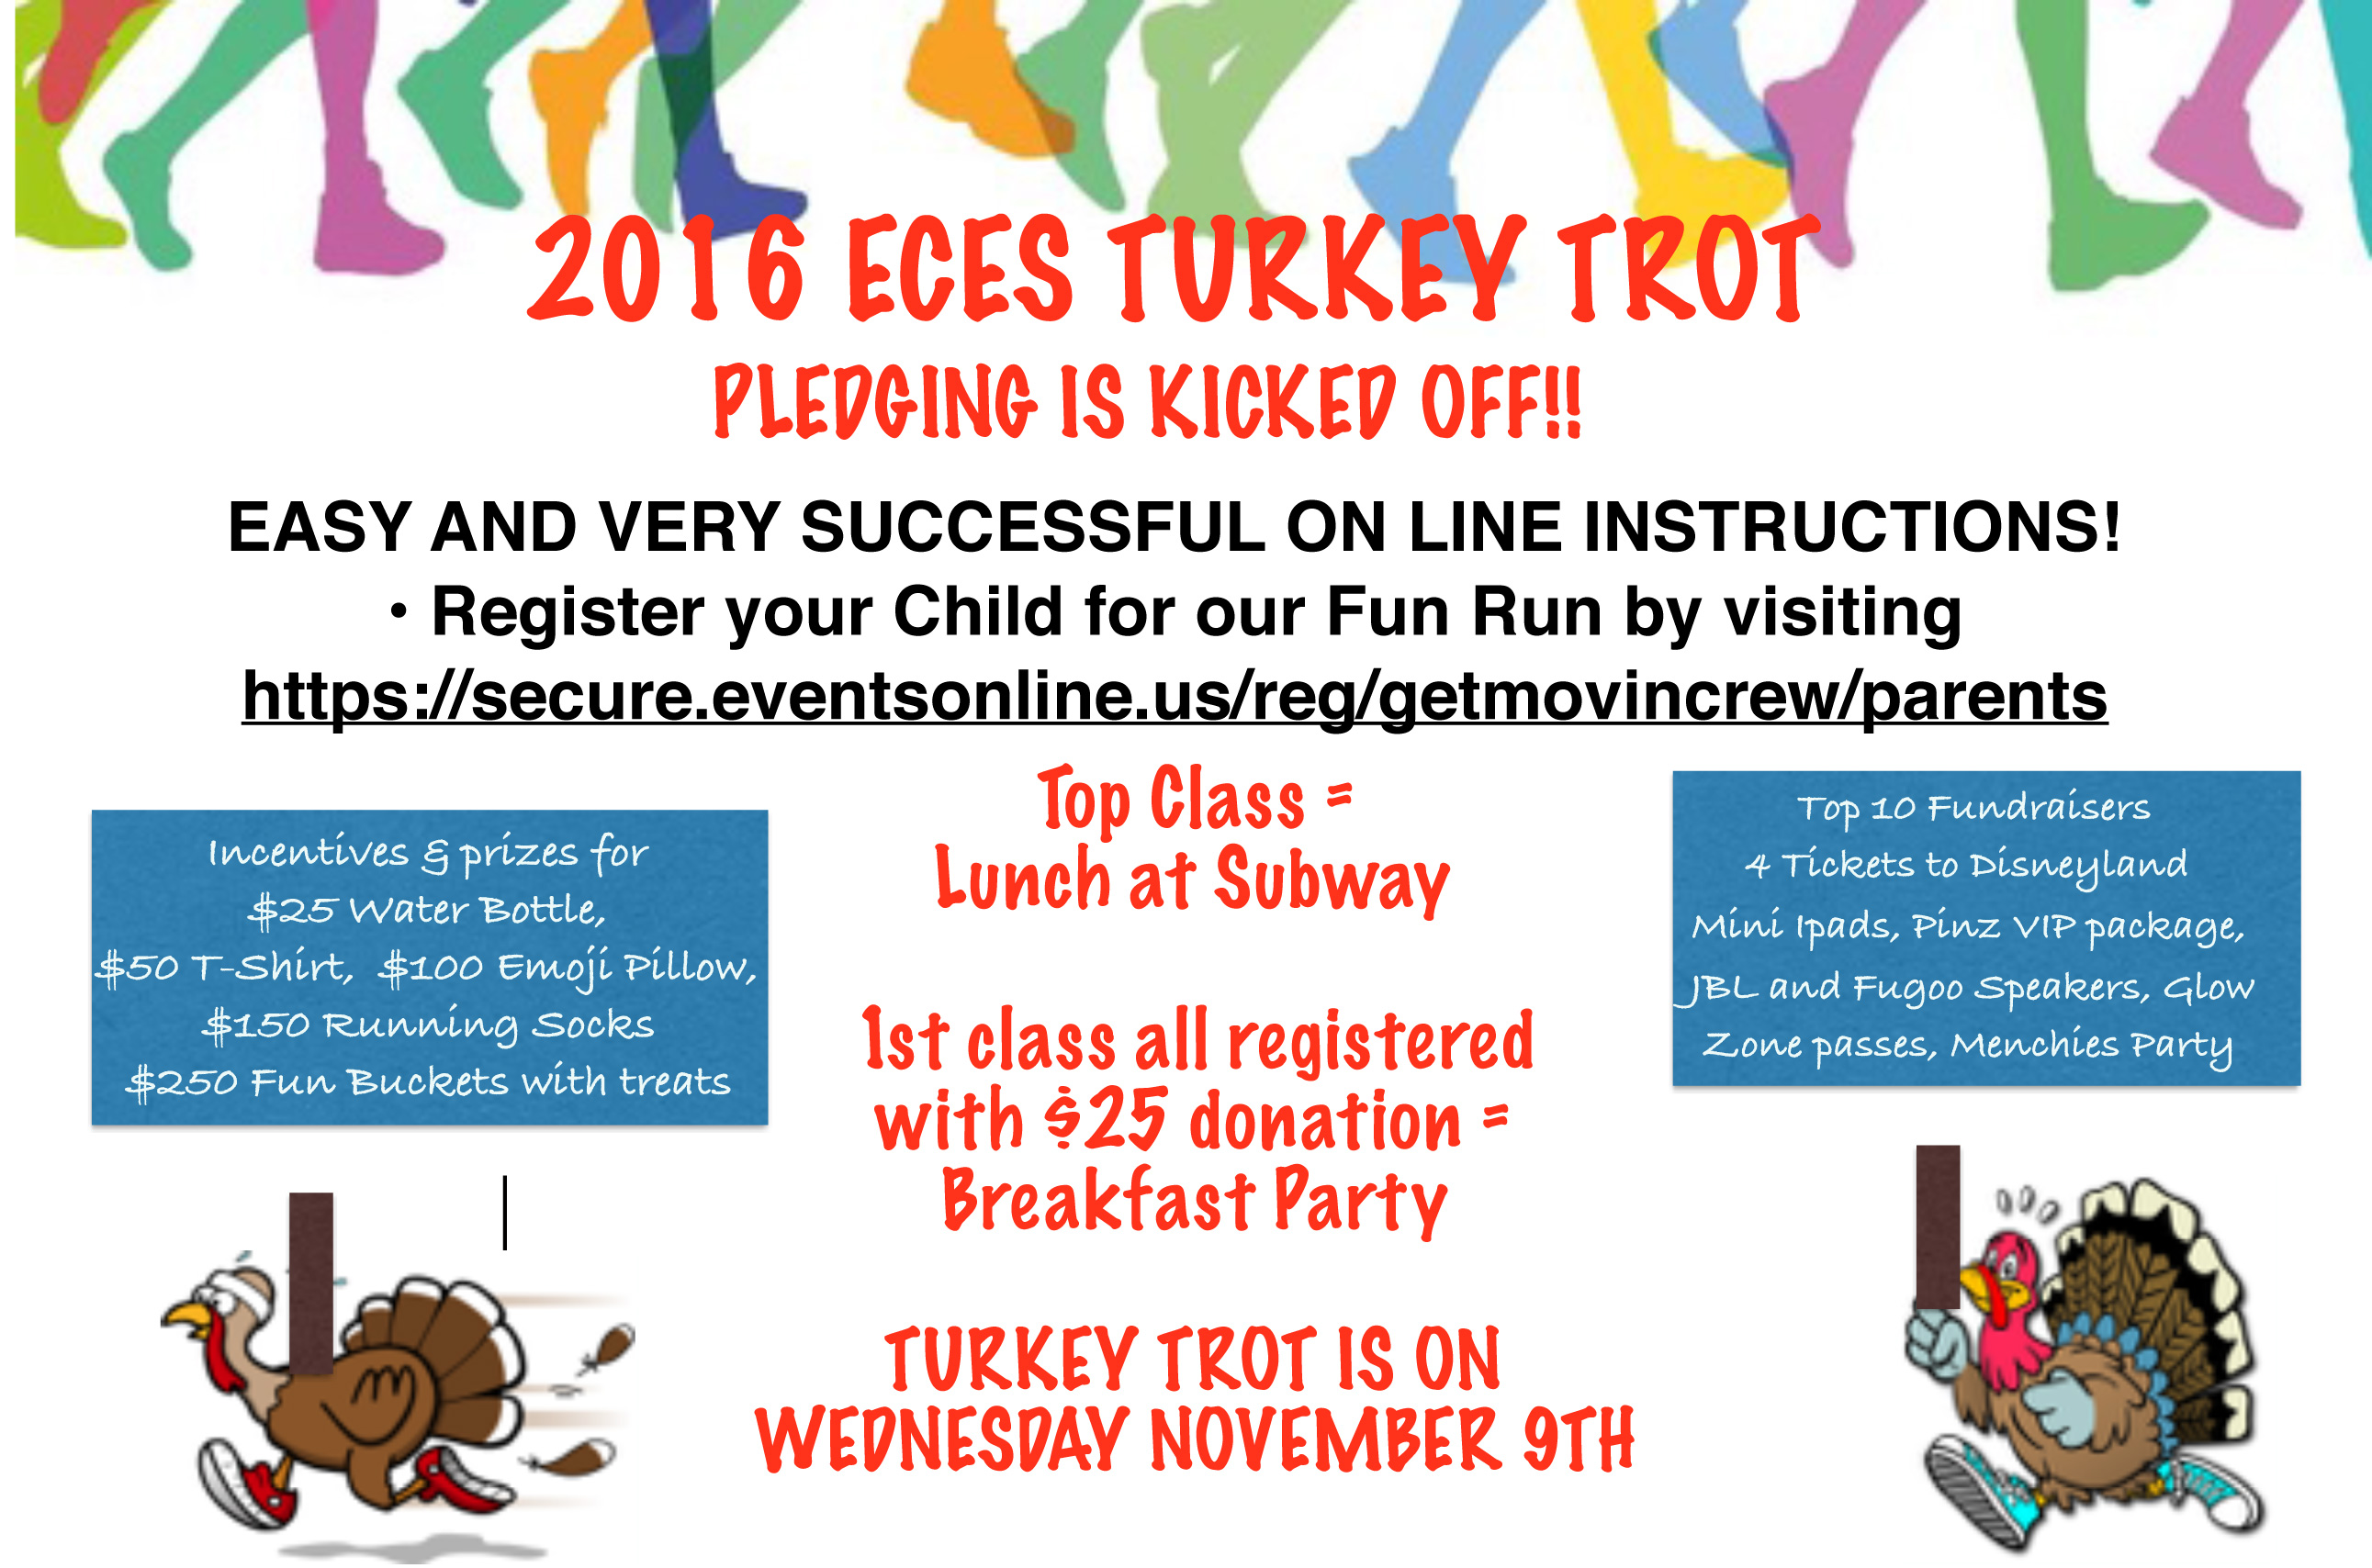 TURKEY TROT!